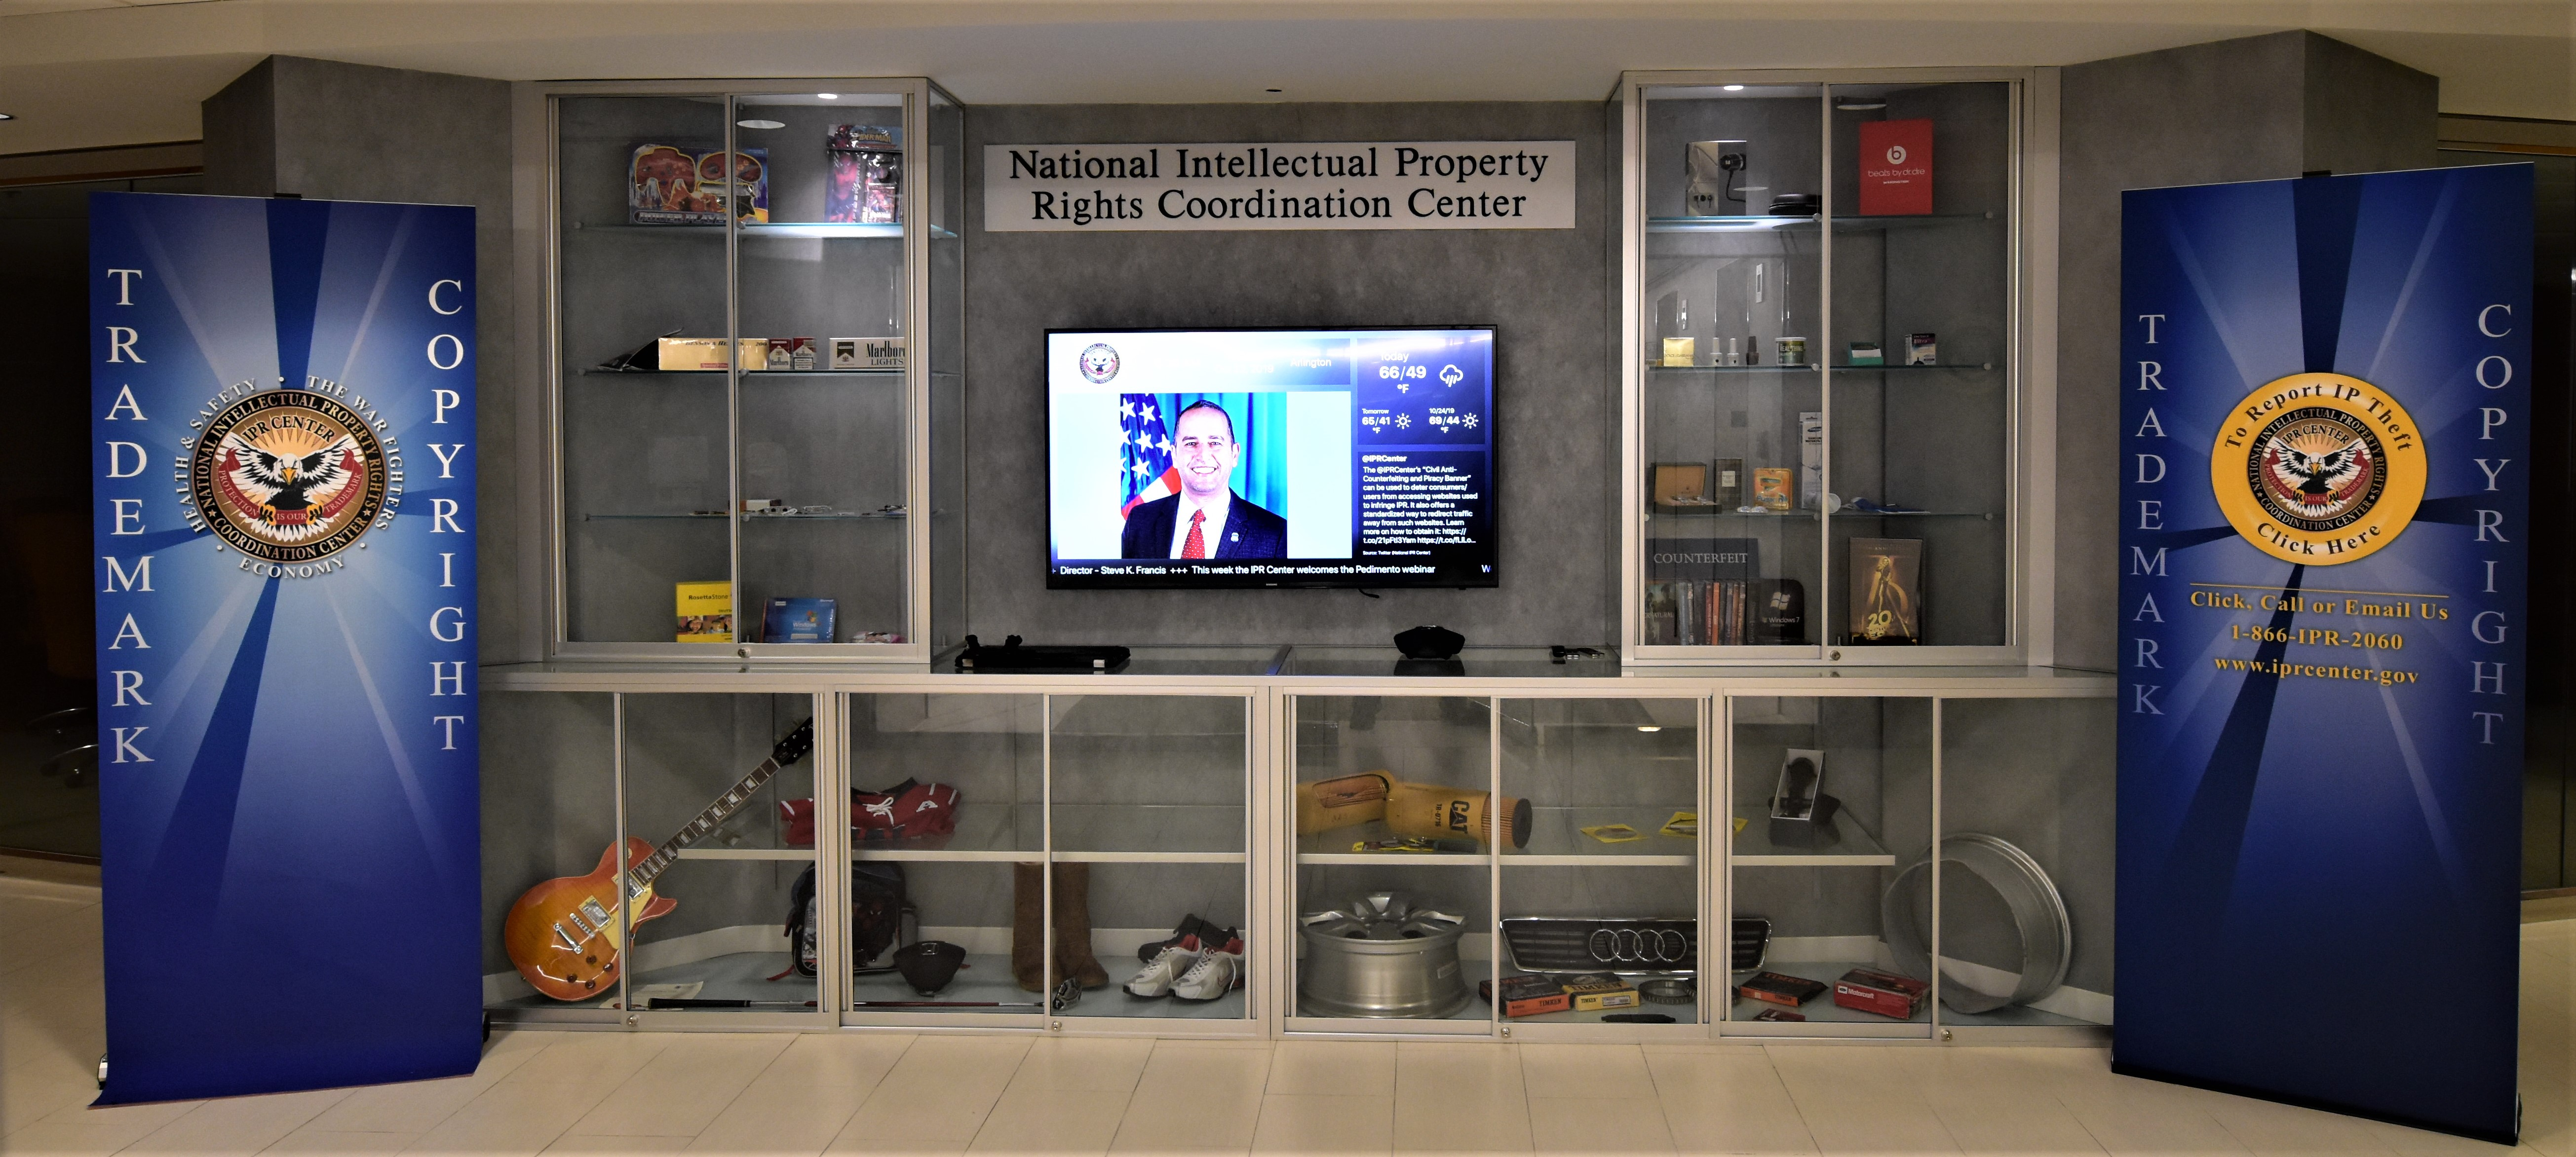 Lobby of National Intellectual Property Rights Coordination Center